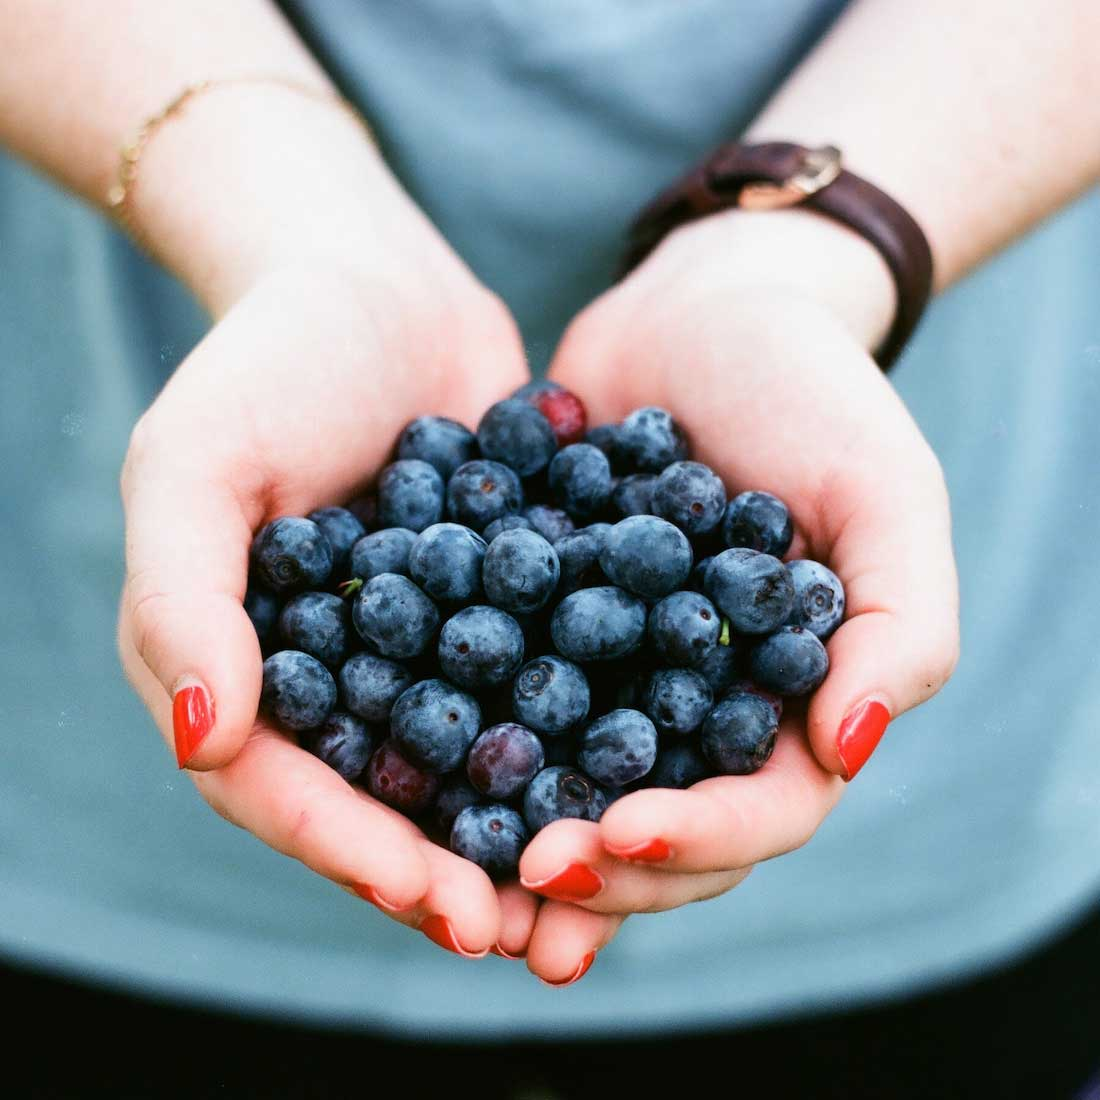 My Top 10 Favorite Superfoods (+ Delicious Recipes!)